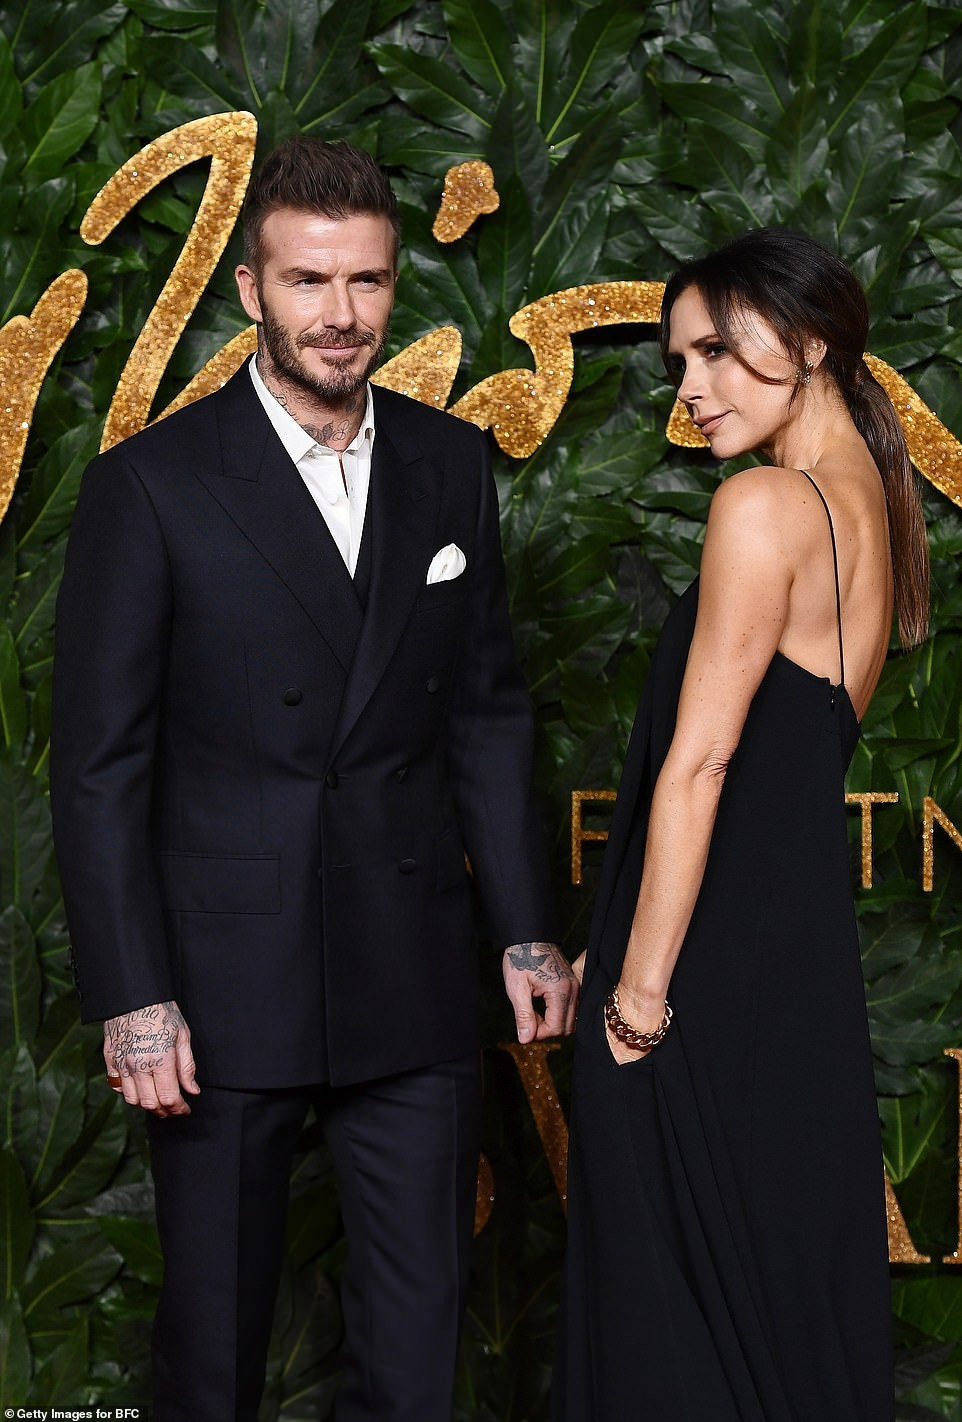 Victoria Beckham, Kendall Jenner, Cindy Crawford, Kaia Gerber and other celebrities at the British Fashion Awards (photos)